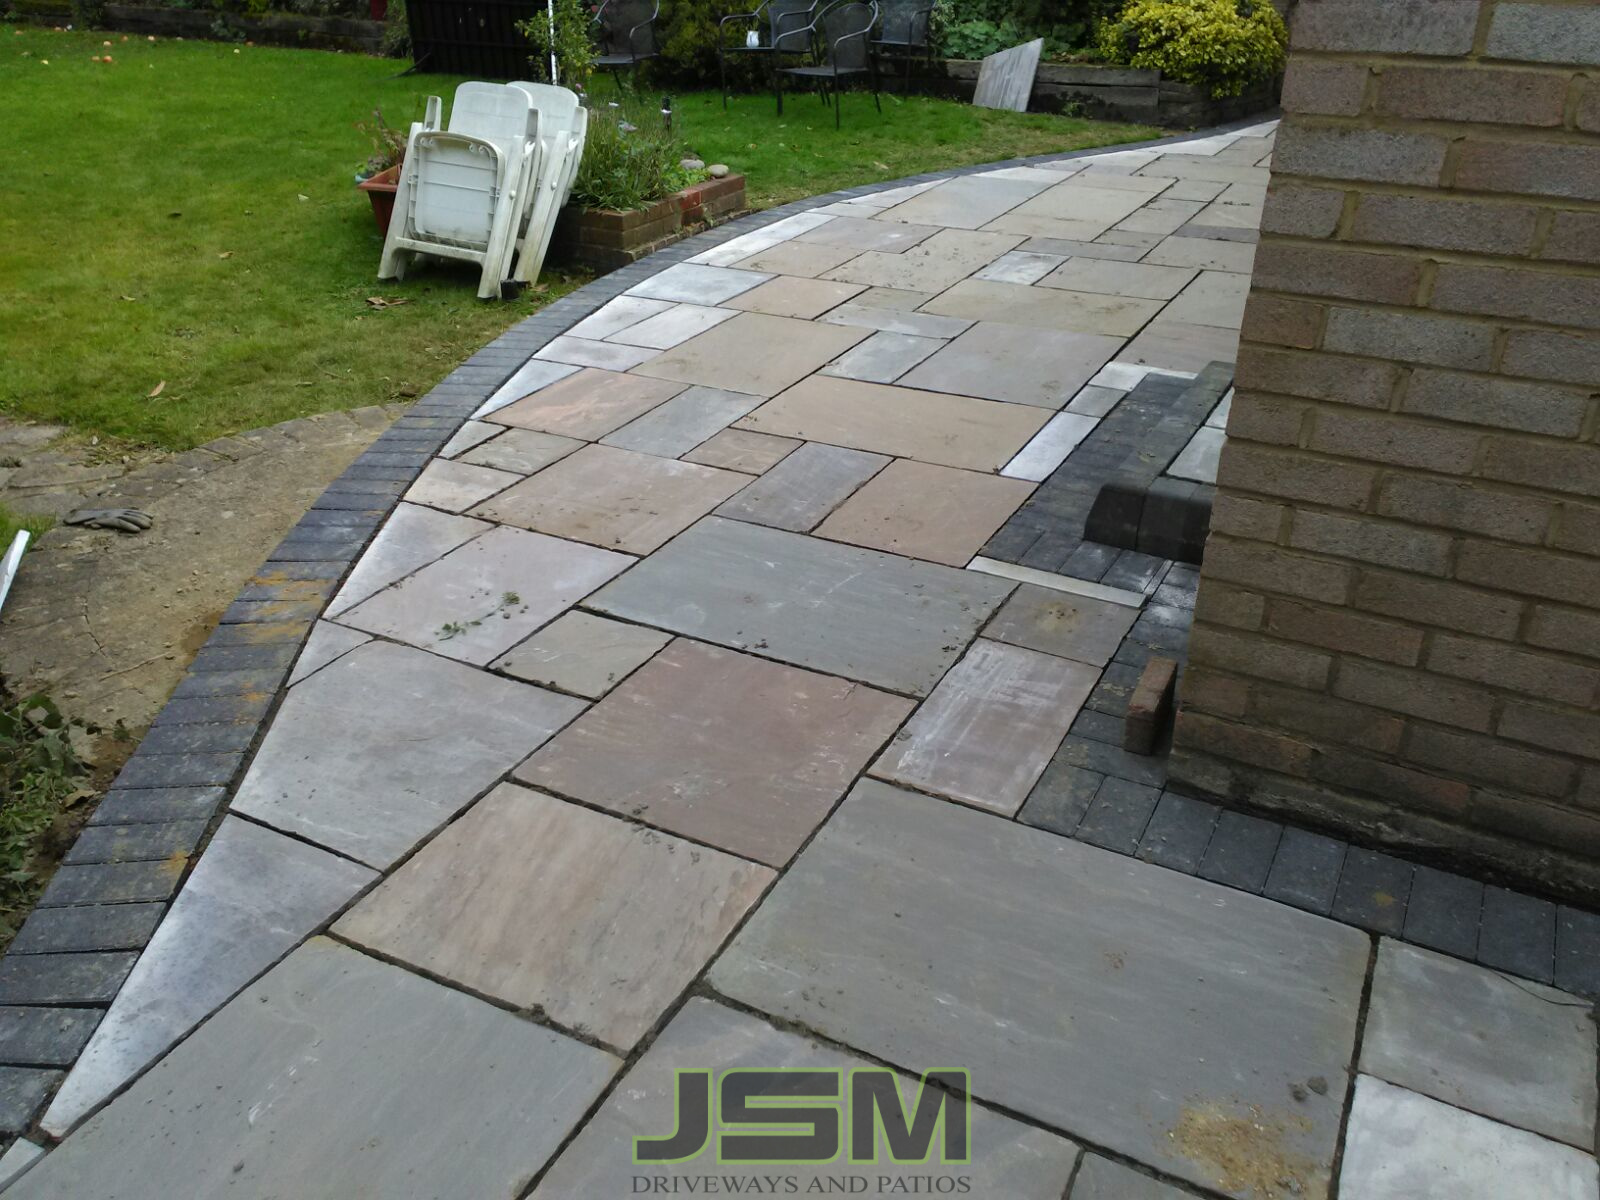 Patio Paving Company in Courteenhall, Milton Keynes